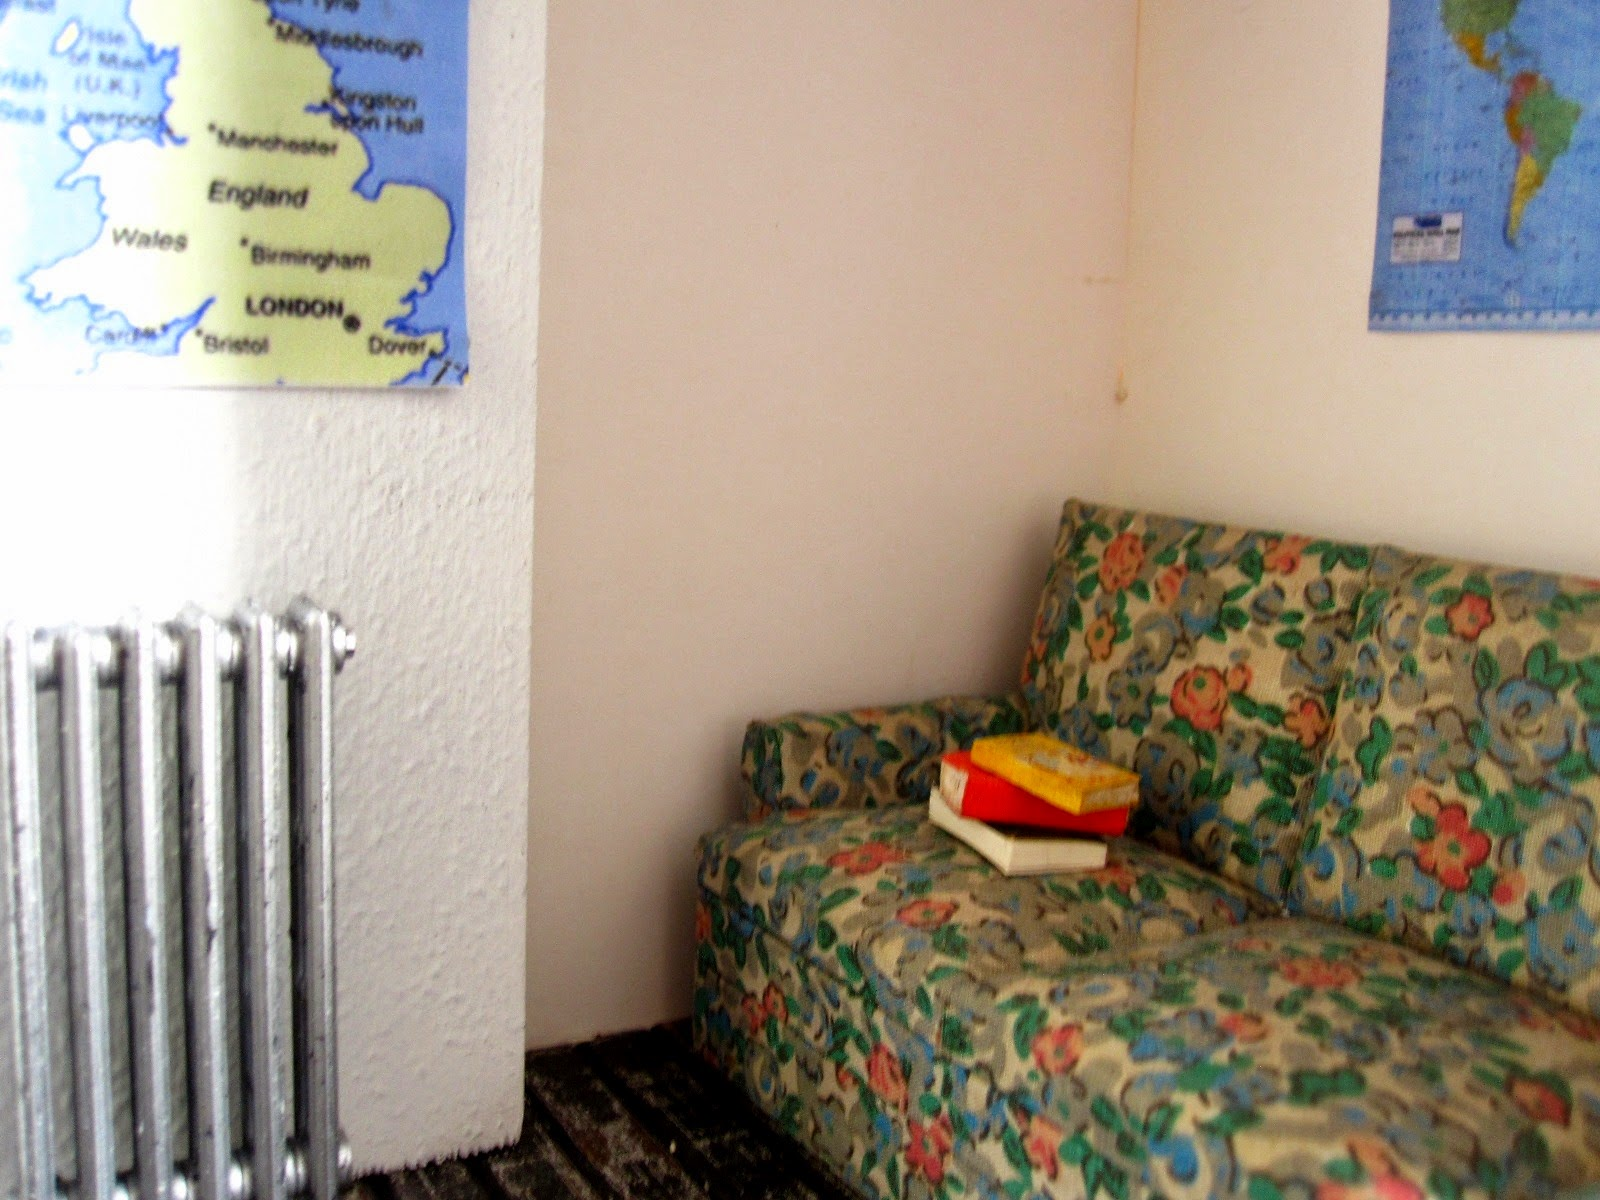 Sofa in the corner of a modern dolls' house miniature pop-up Little Library, On the wall above it are some vintage maps.